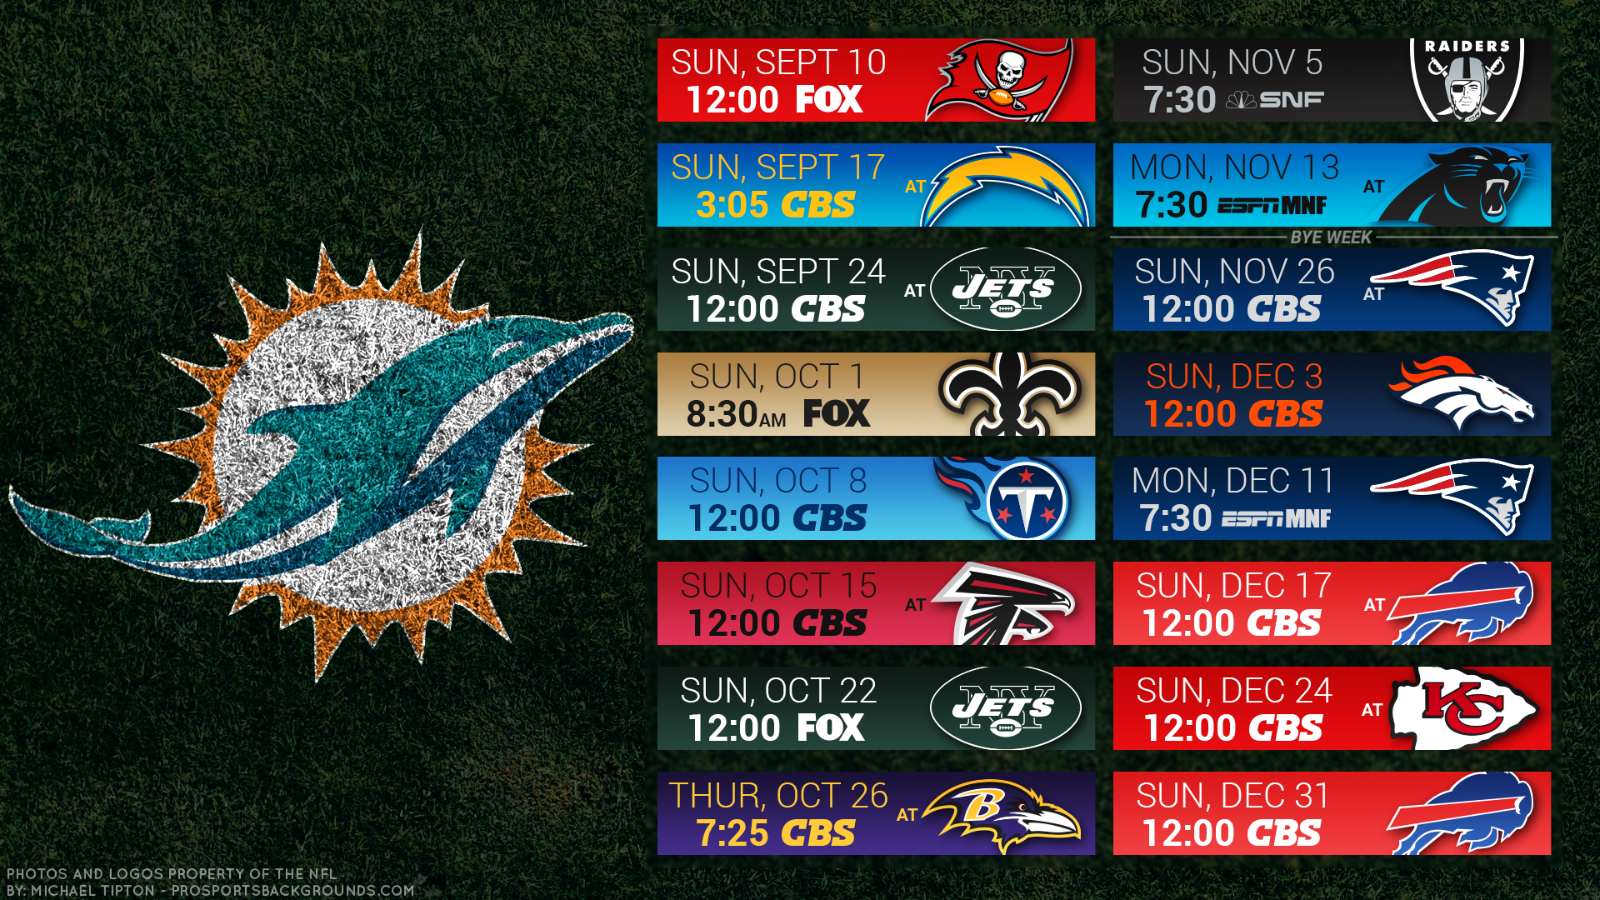 Miami Dolphins NFL 2017 Schedule turf Poster 24 X 36 inch  - $18.99